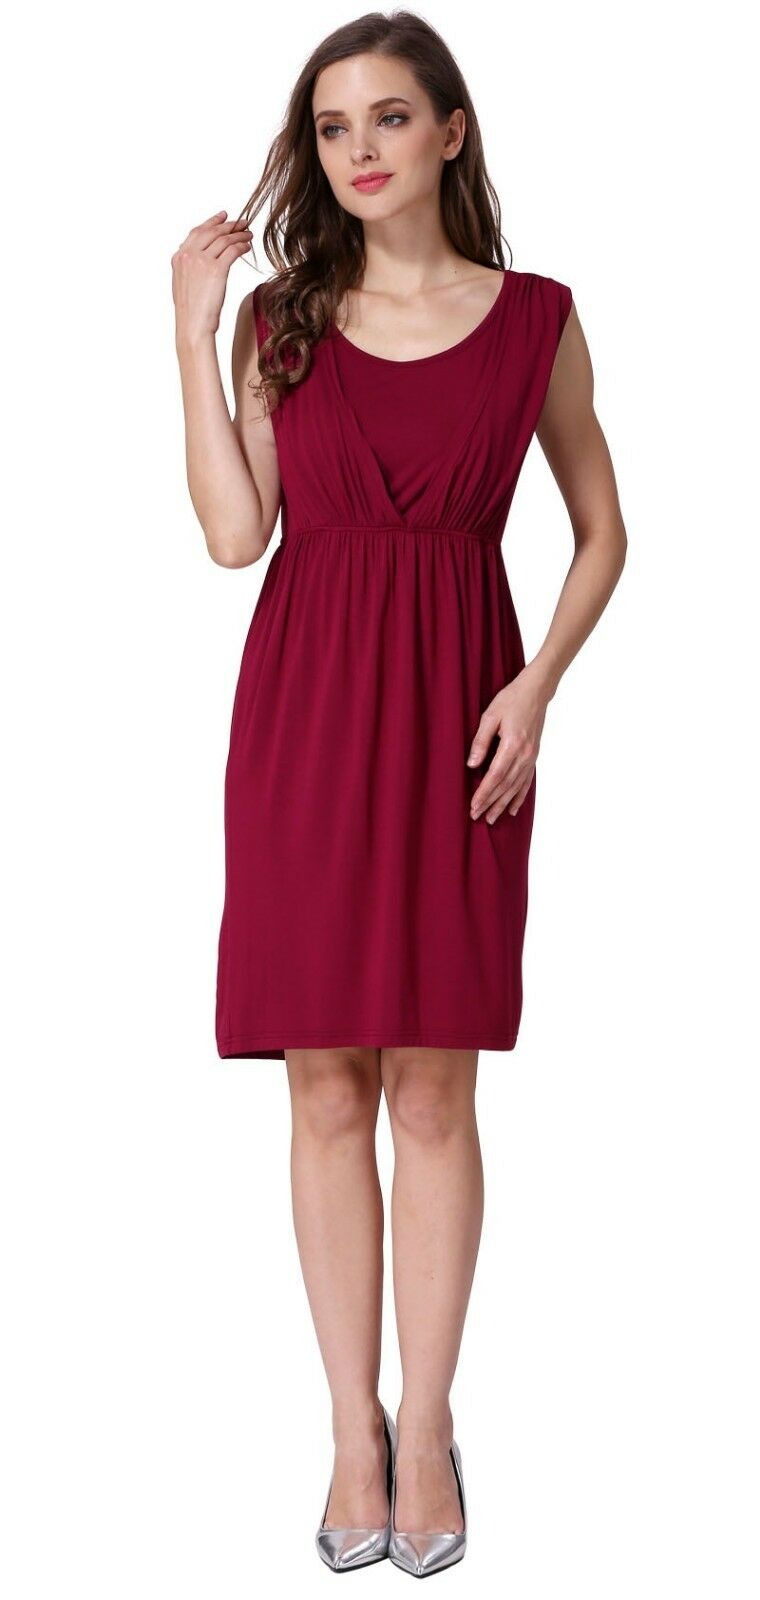 Short sleeve maternity clothes modal summer breastfeeding dresses picture 13 of 13 ombrellifo Image collections